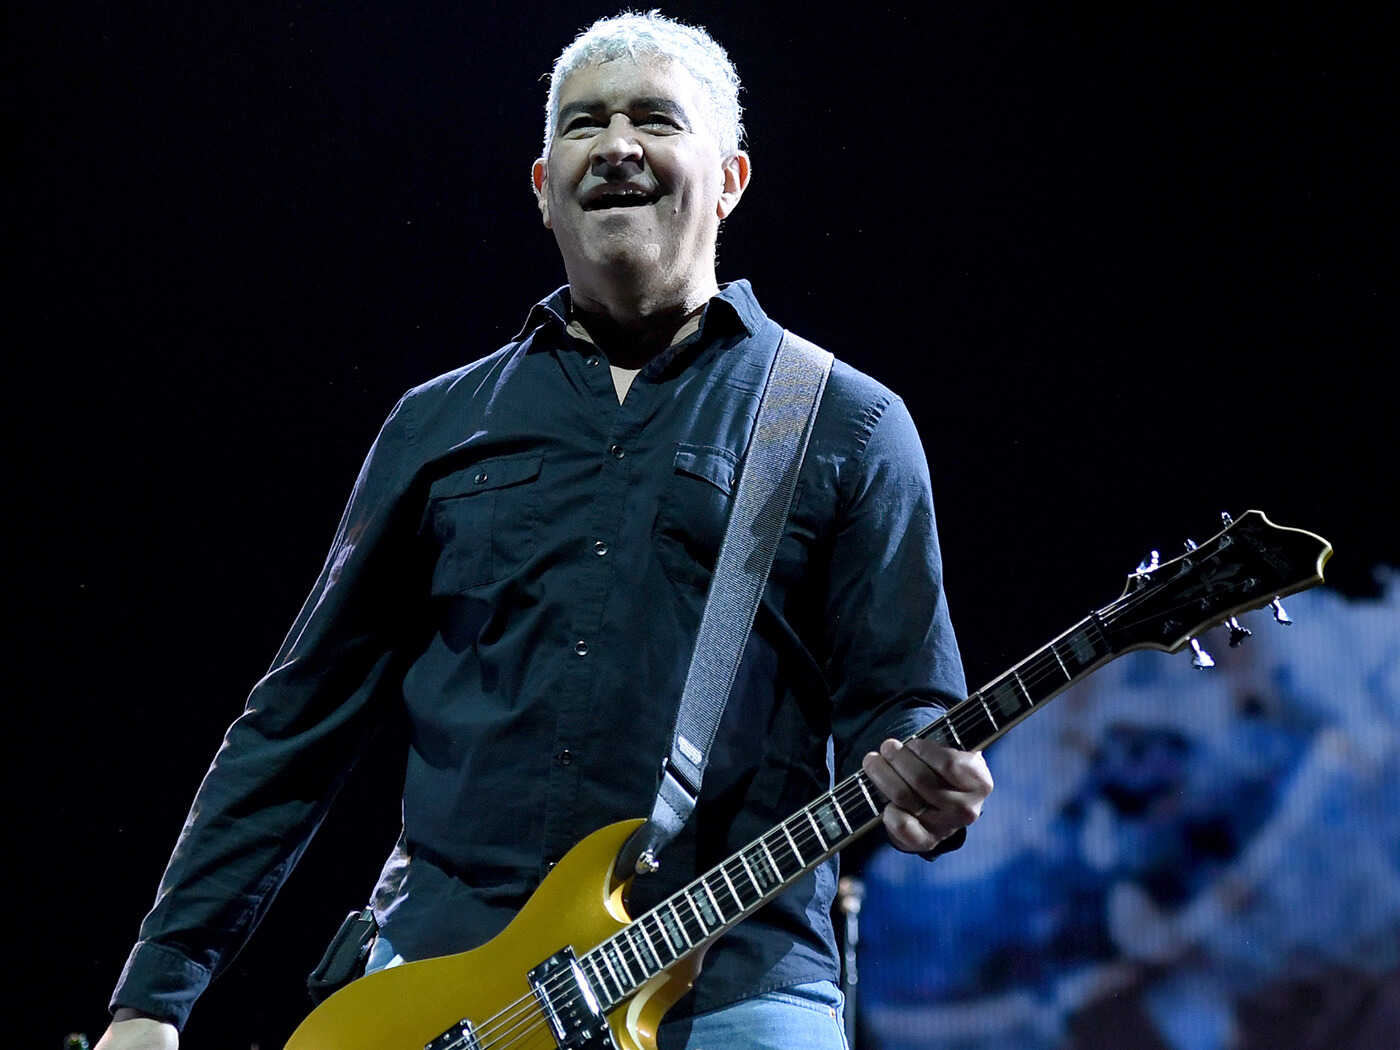 Pat Smear of Foo Fighters